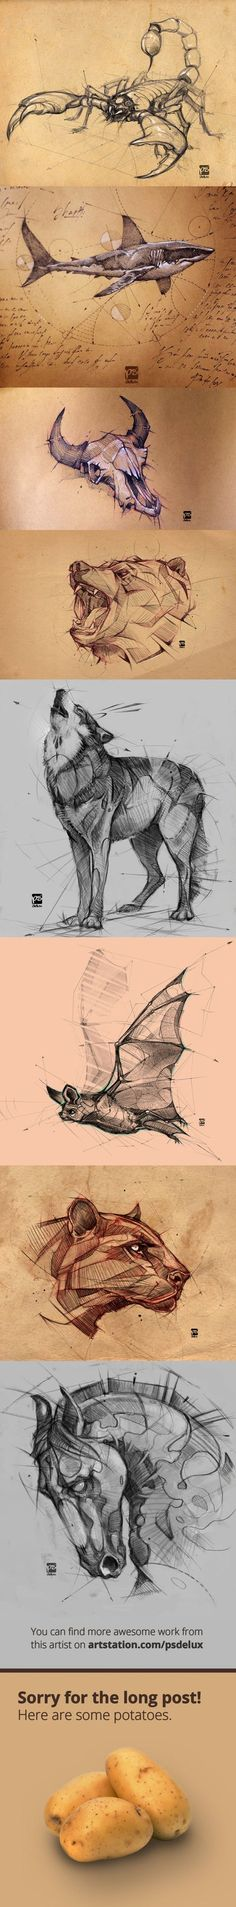 Check out these awesome drawings from psdelux: